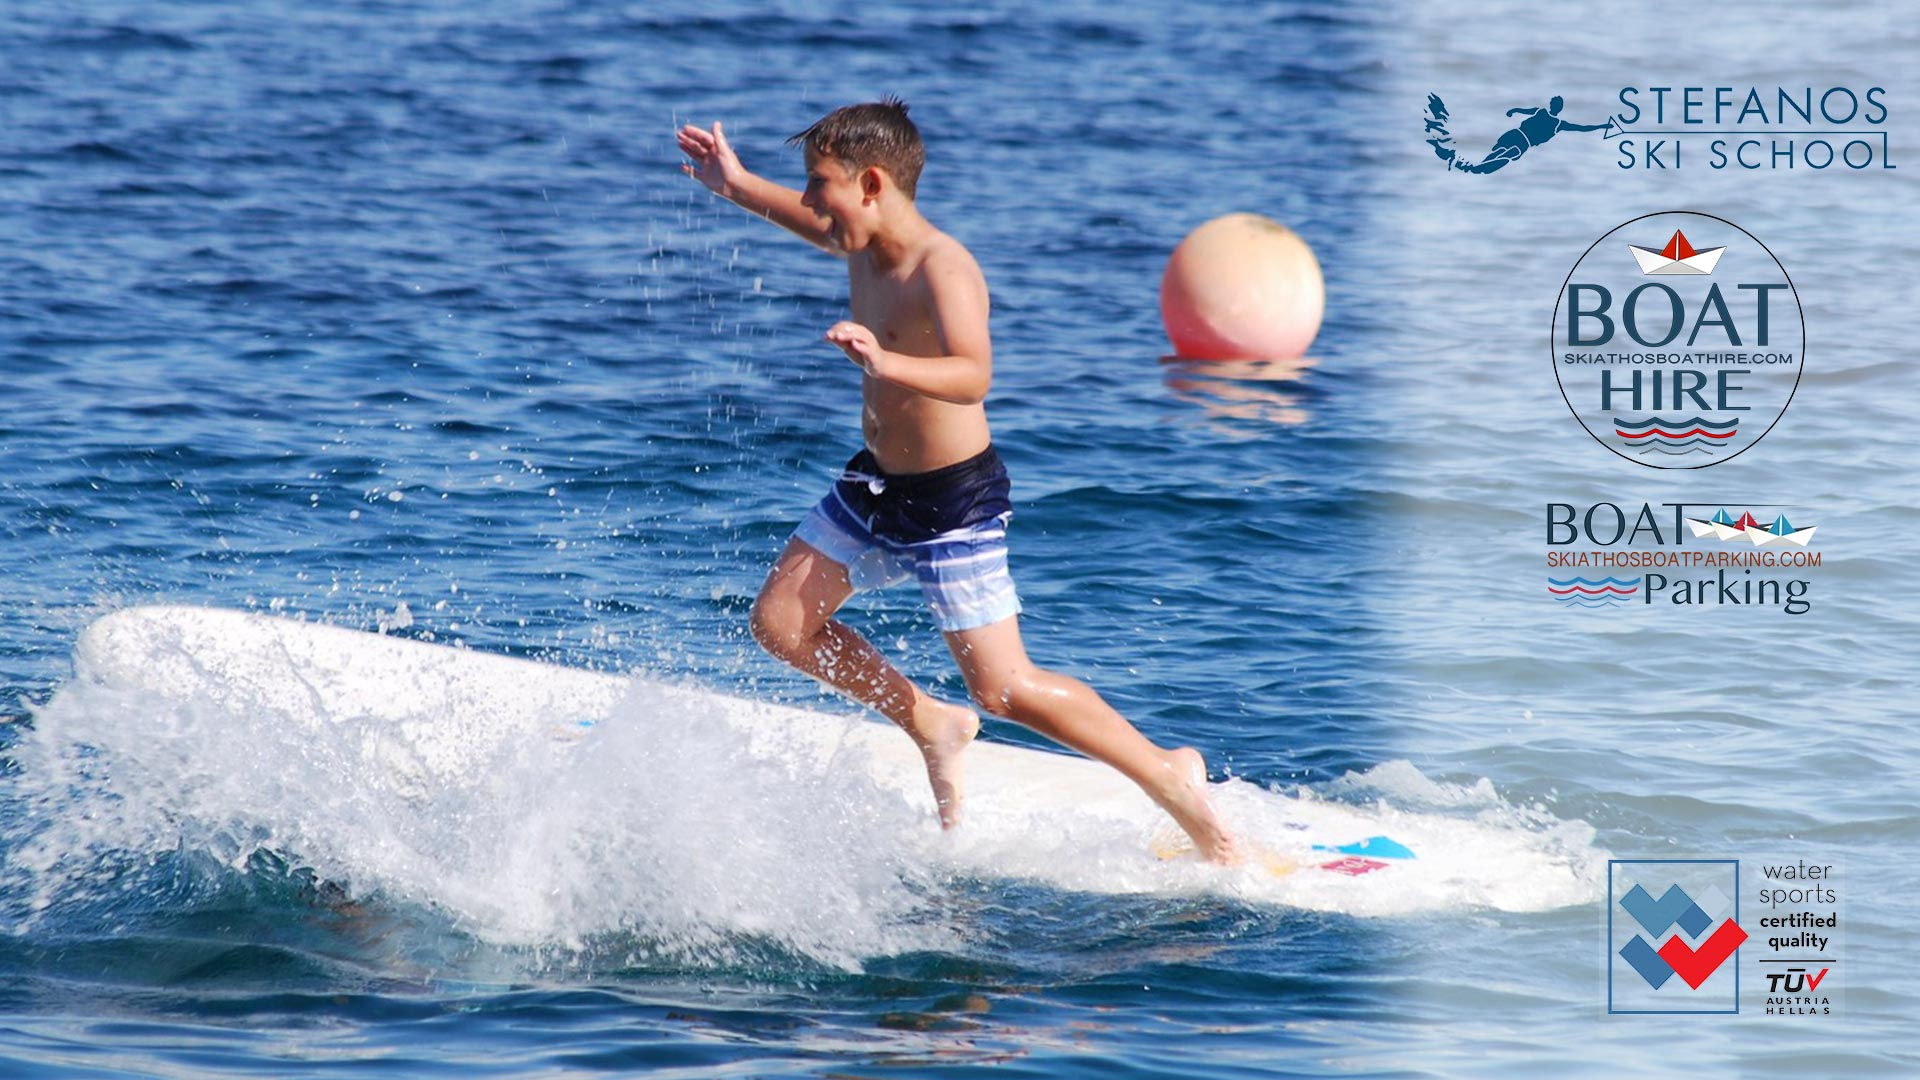 Stand Up Paddles S.U.P Exclusive offers for families 3 Stefanos Ski School & Boat rental